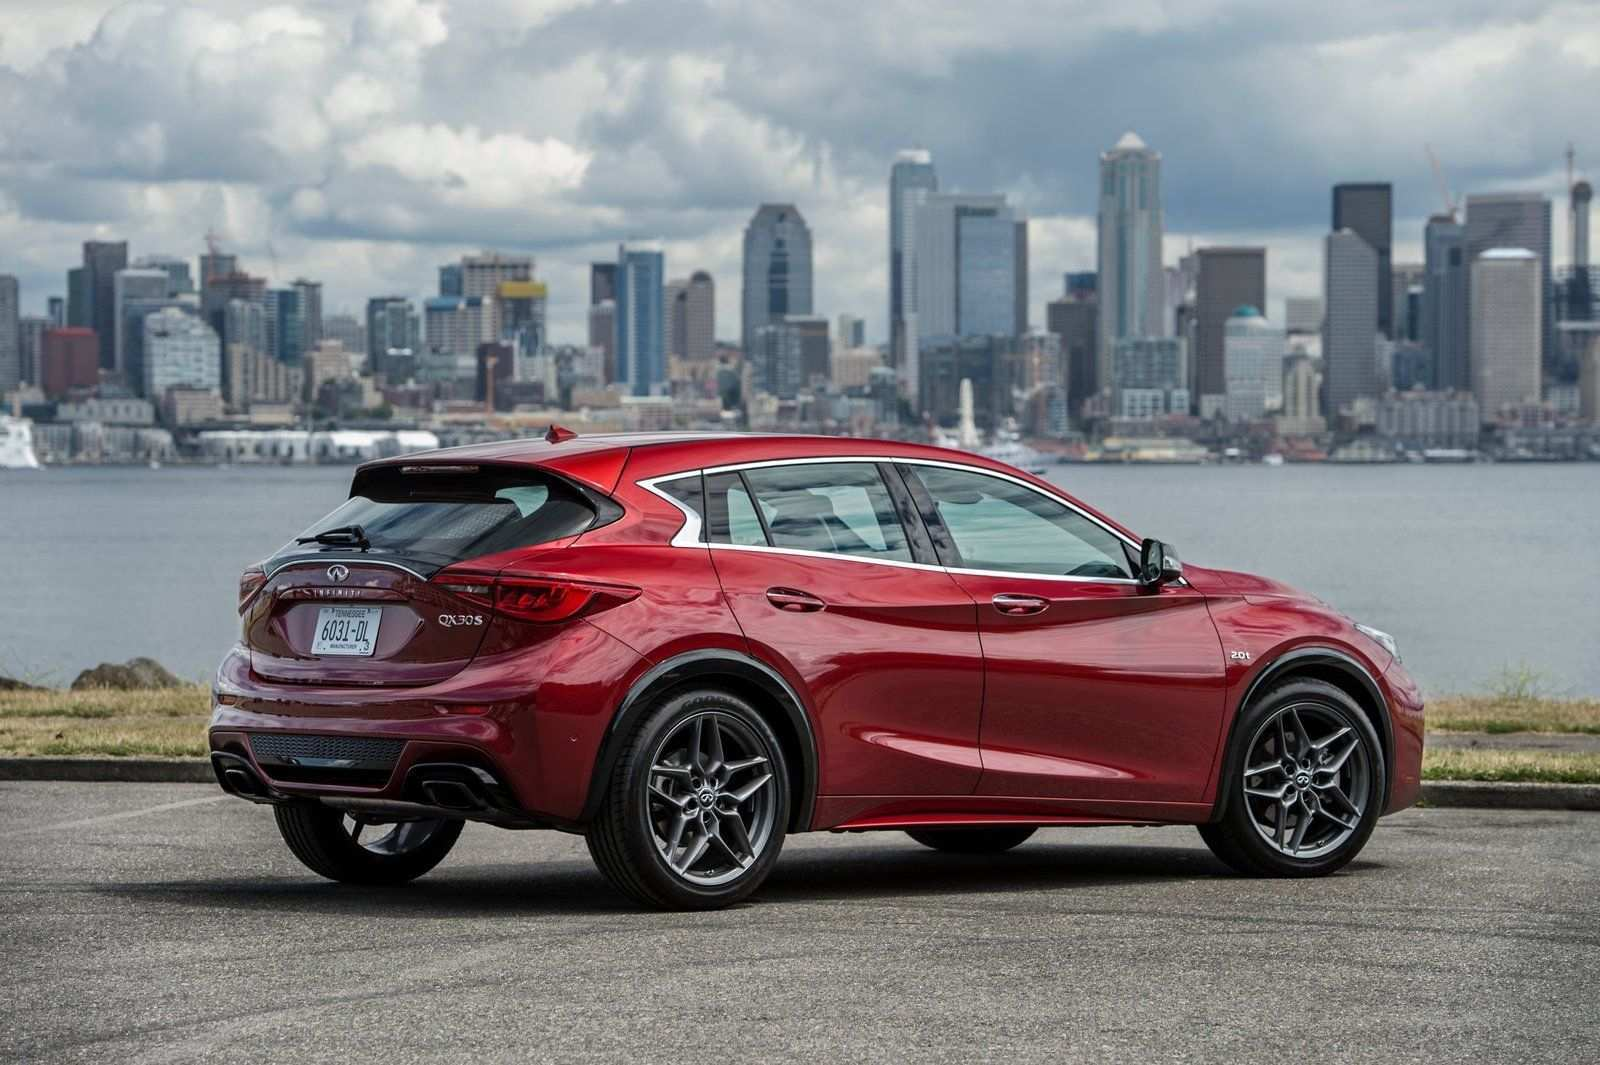 86 All New New Infiniti 2019 Qx30 Review Specs And Release Date Speed Test for New Infiniti 2019 Qx30 Review Specs And Release Date